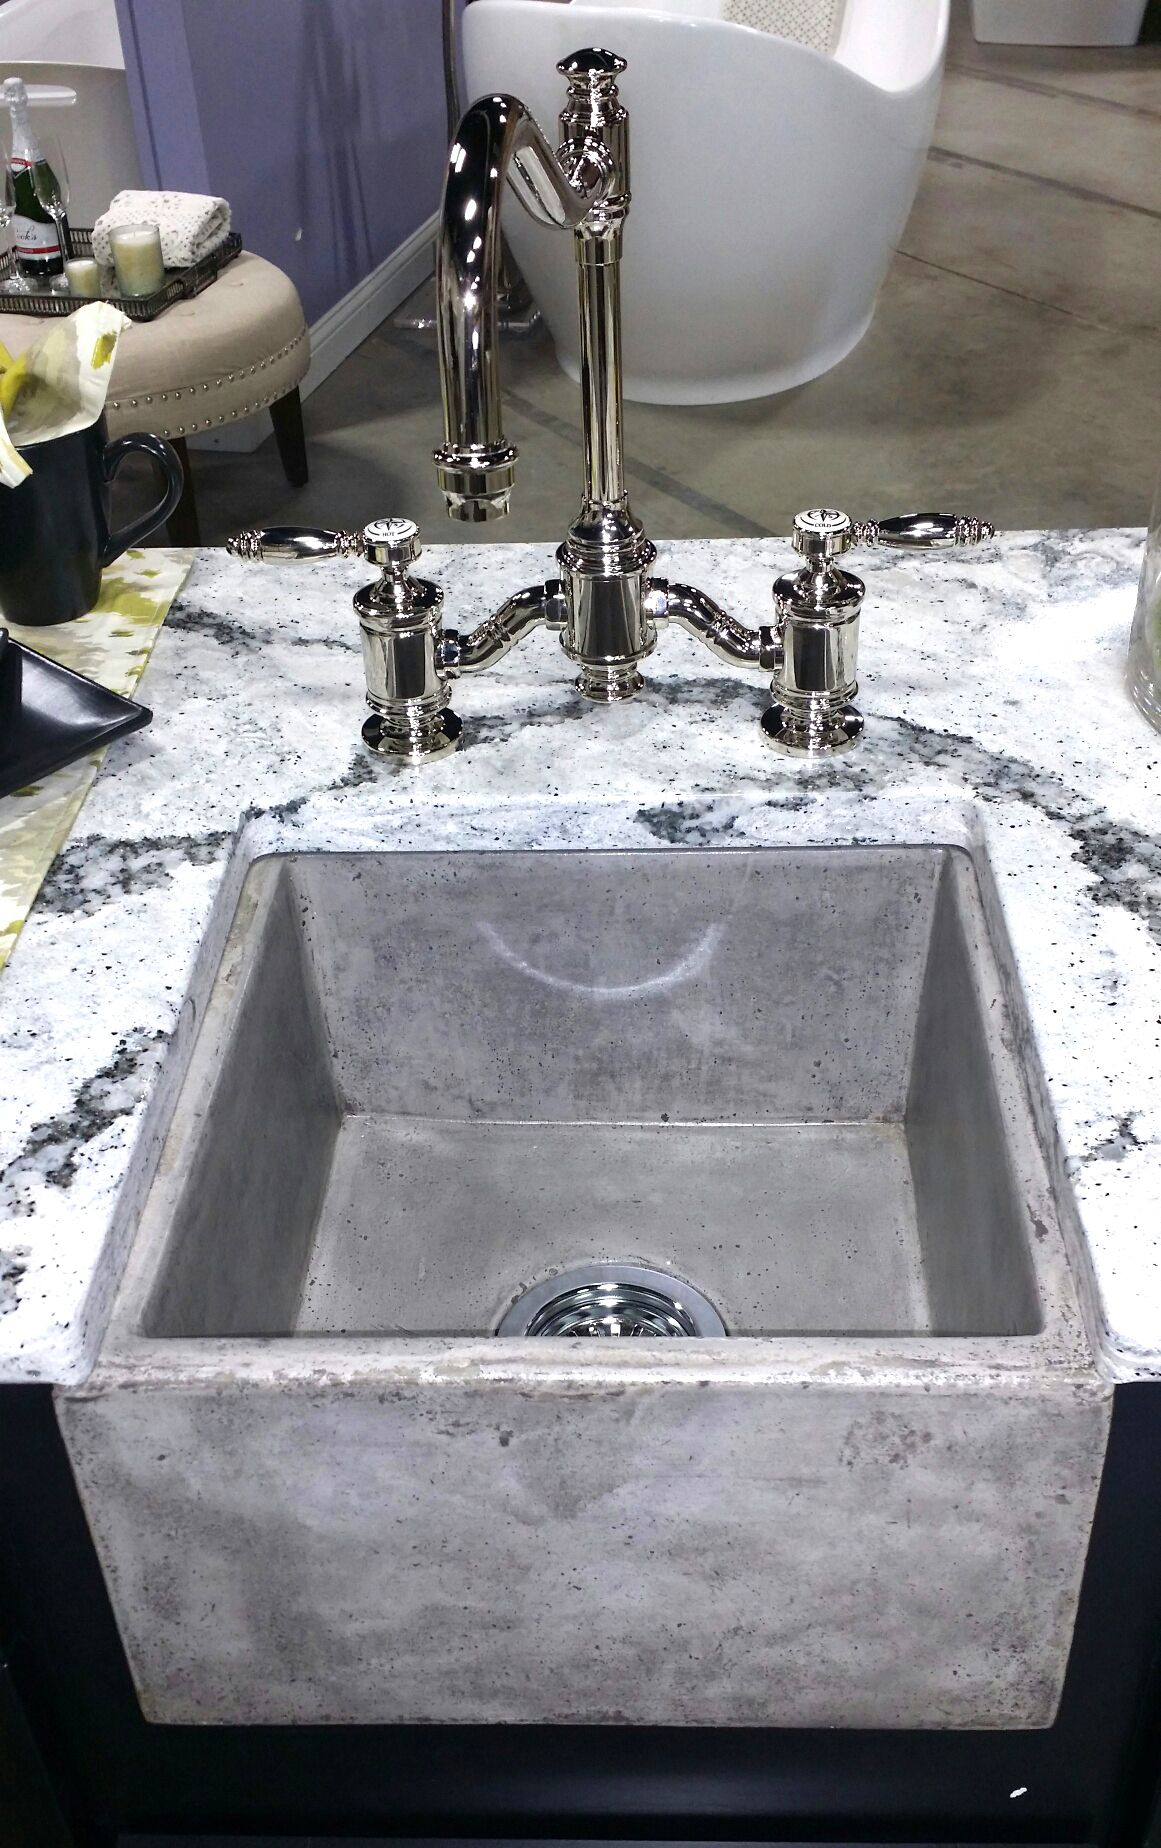 Concrete Sink With Our Annapolis Bridge Faucet 6200 In Polished